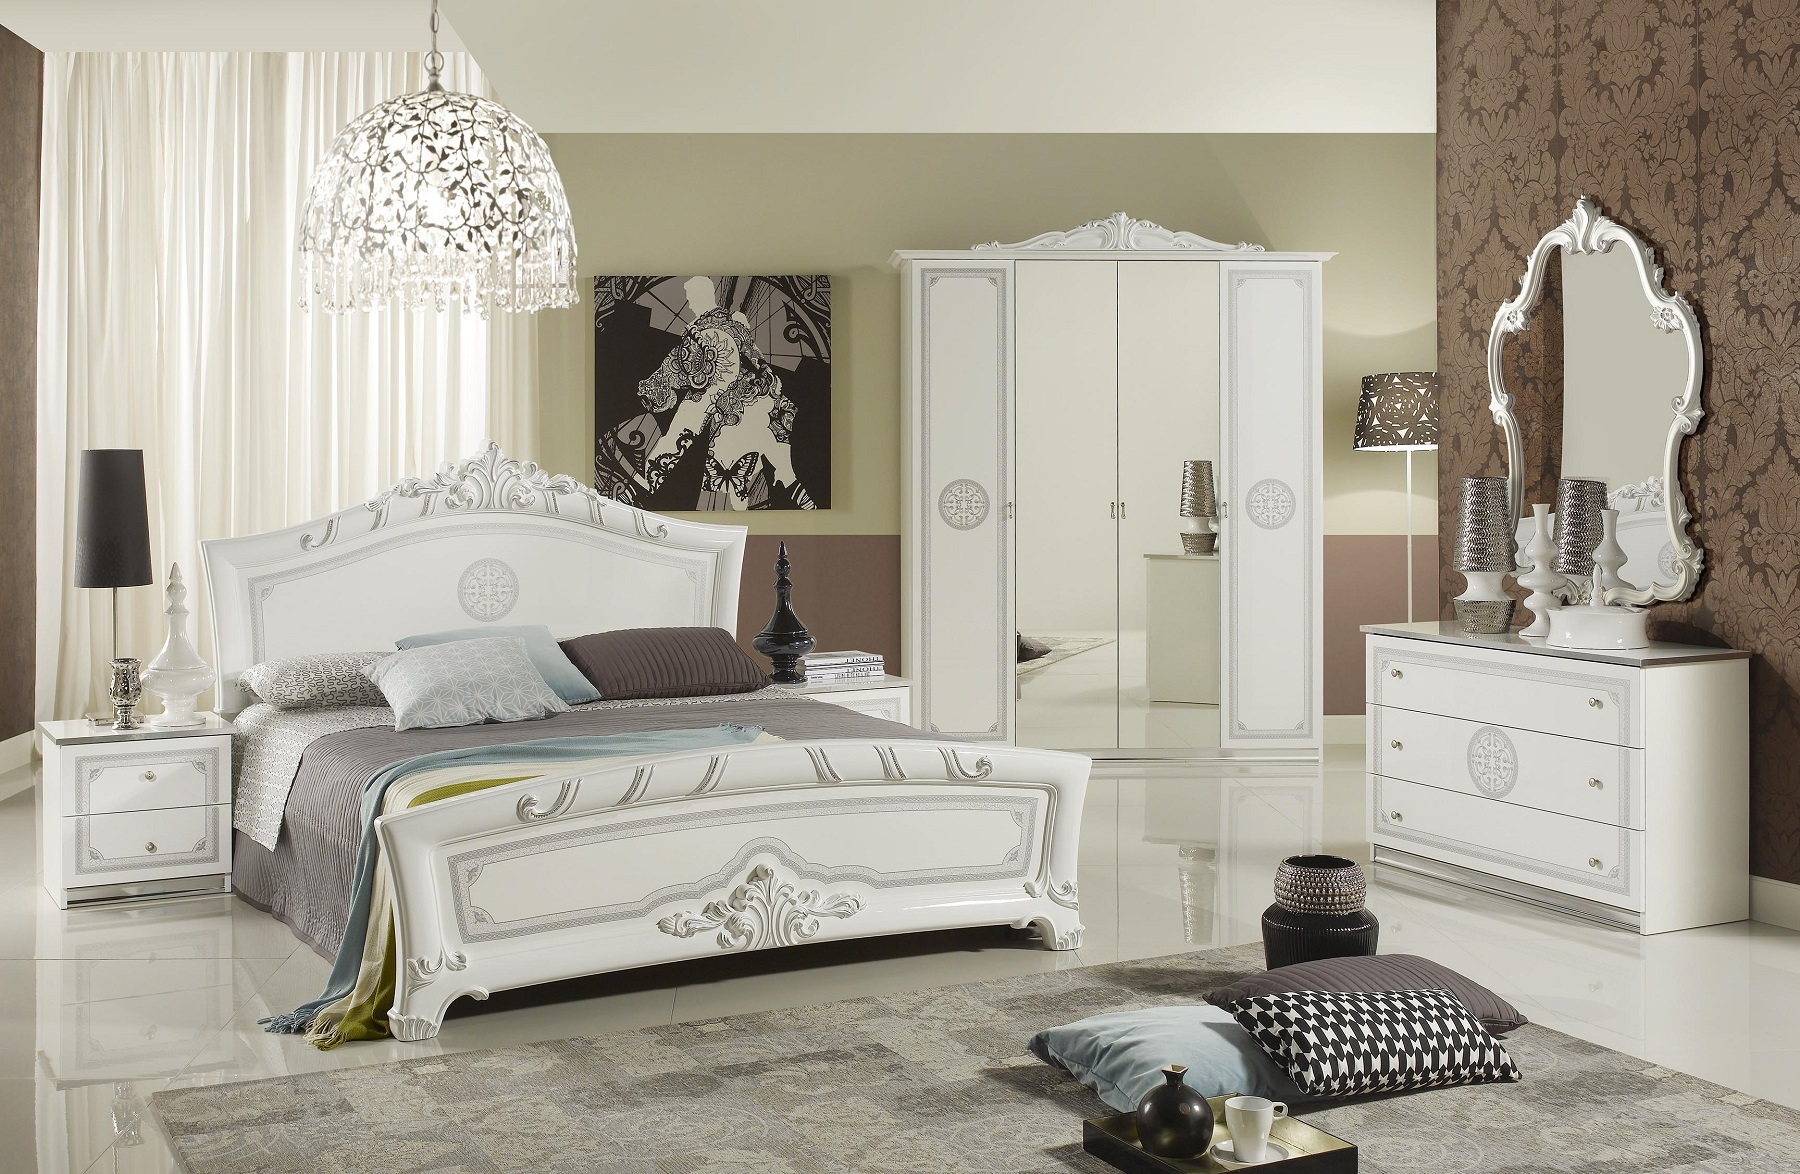 schlafzimmer great weiss silber klassische design. Black Bedroom Furniture Sets. Home Design Ideas